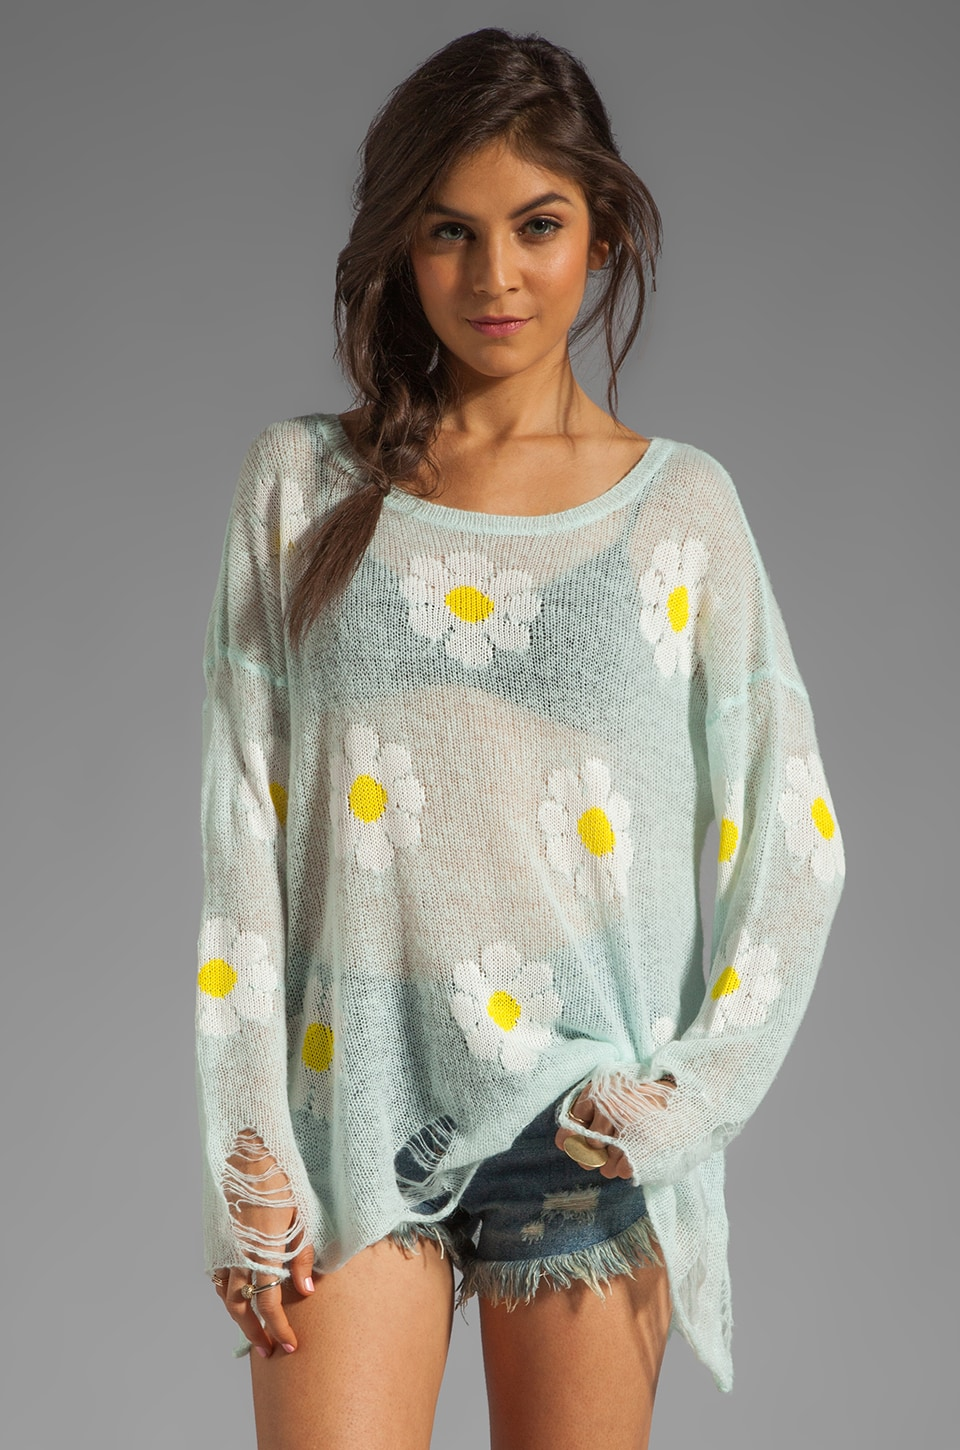 Wildfox Couture White Label Daisy Fest Lennon Sweater in Mall Fountain